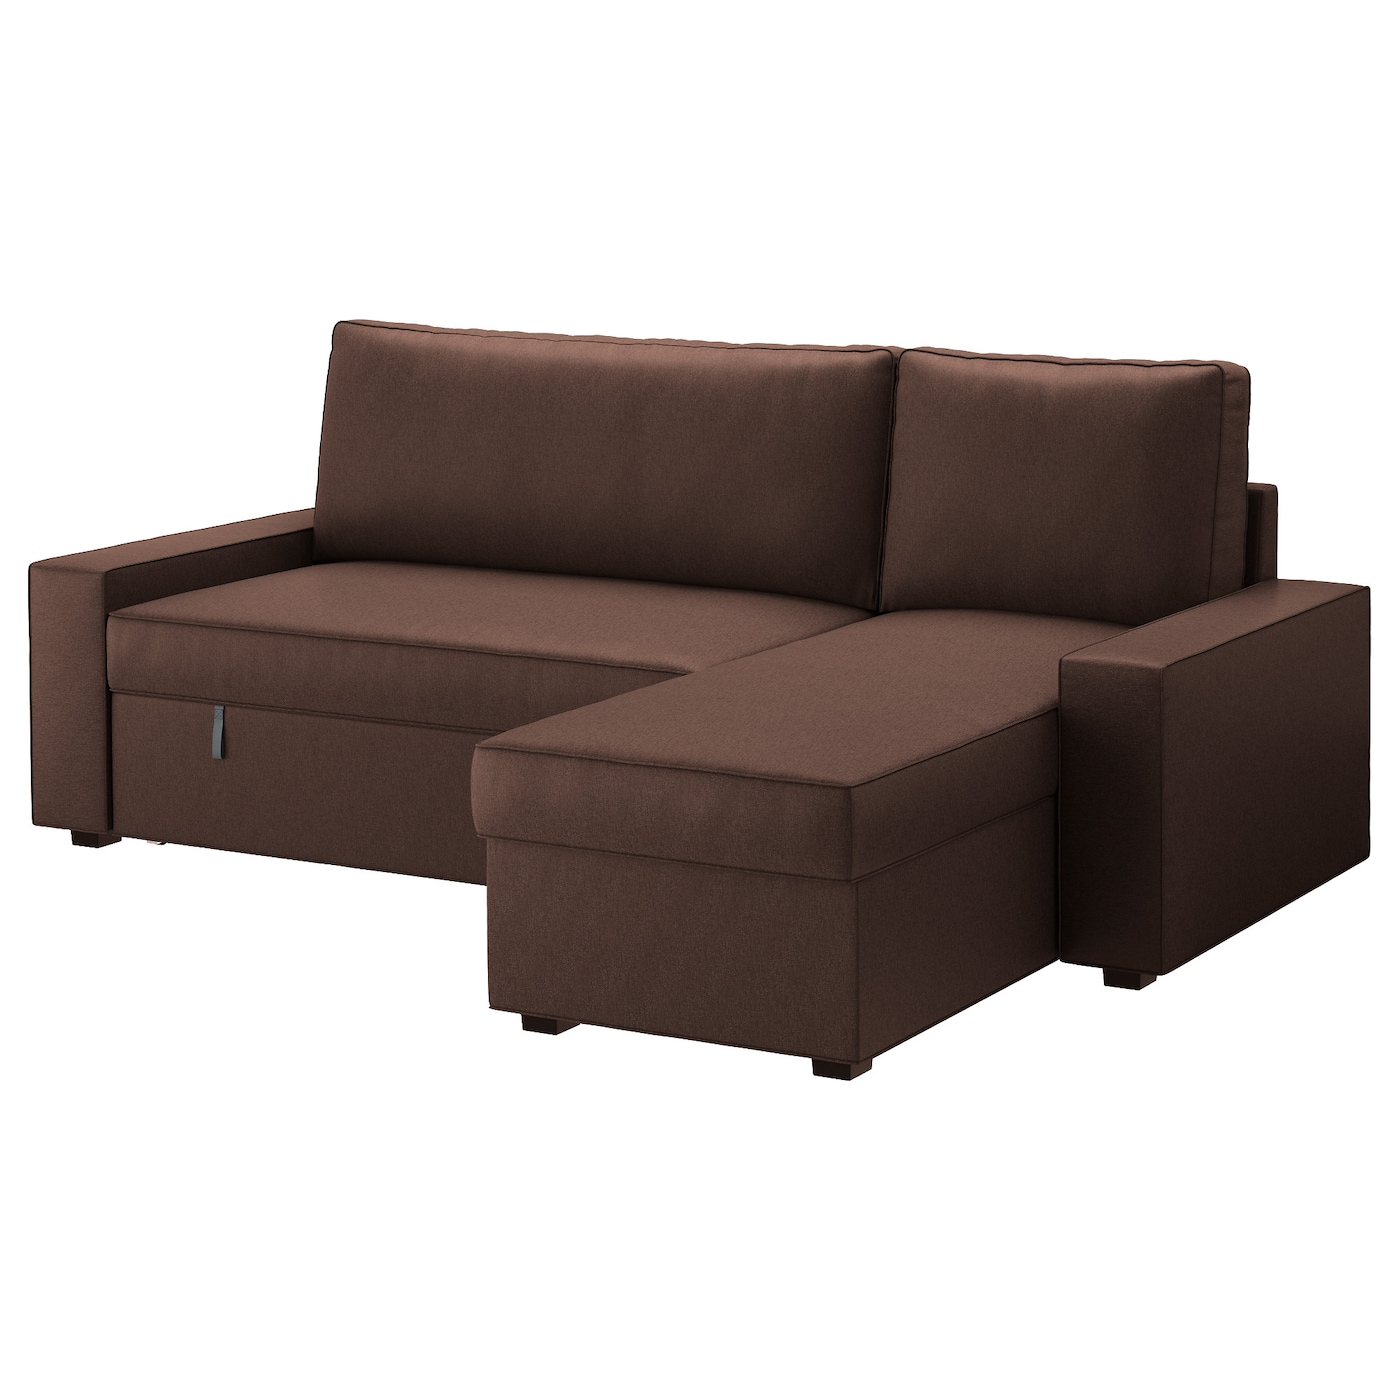 Vilasund sofa bed with chaise longue borred dark brown ikea - Sofa cama chaise longue ...